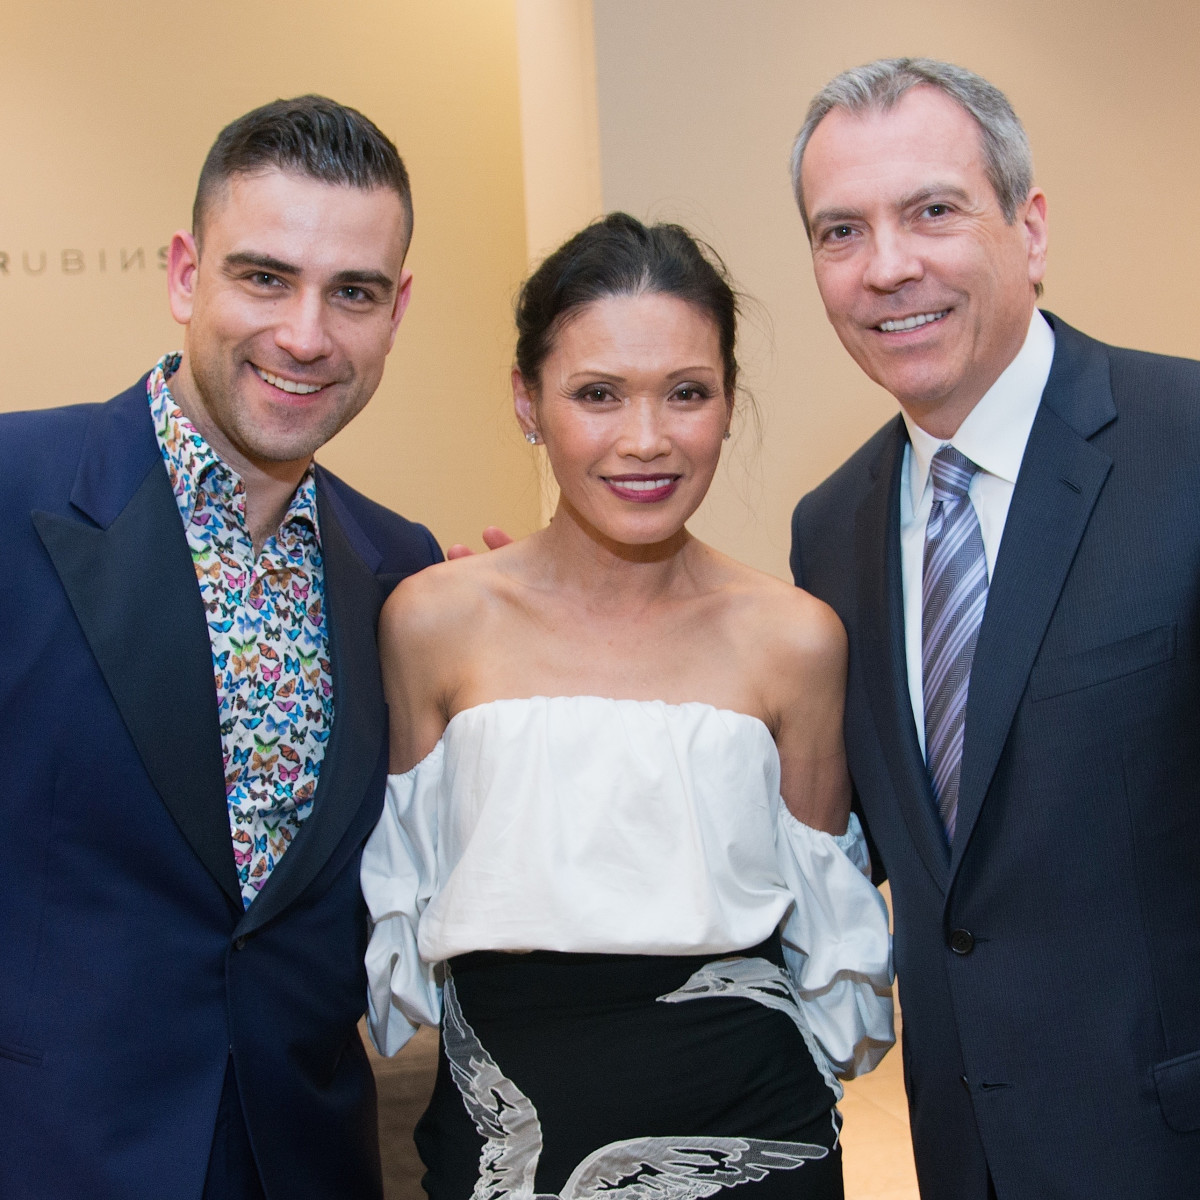 Rubin Singer, Duyen Huynh, Bob Devlin at Dress for Dinner